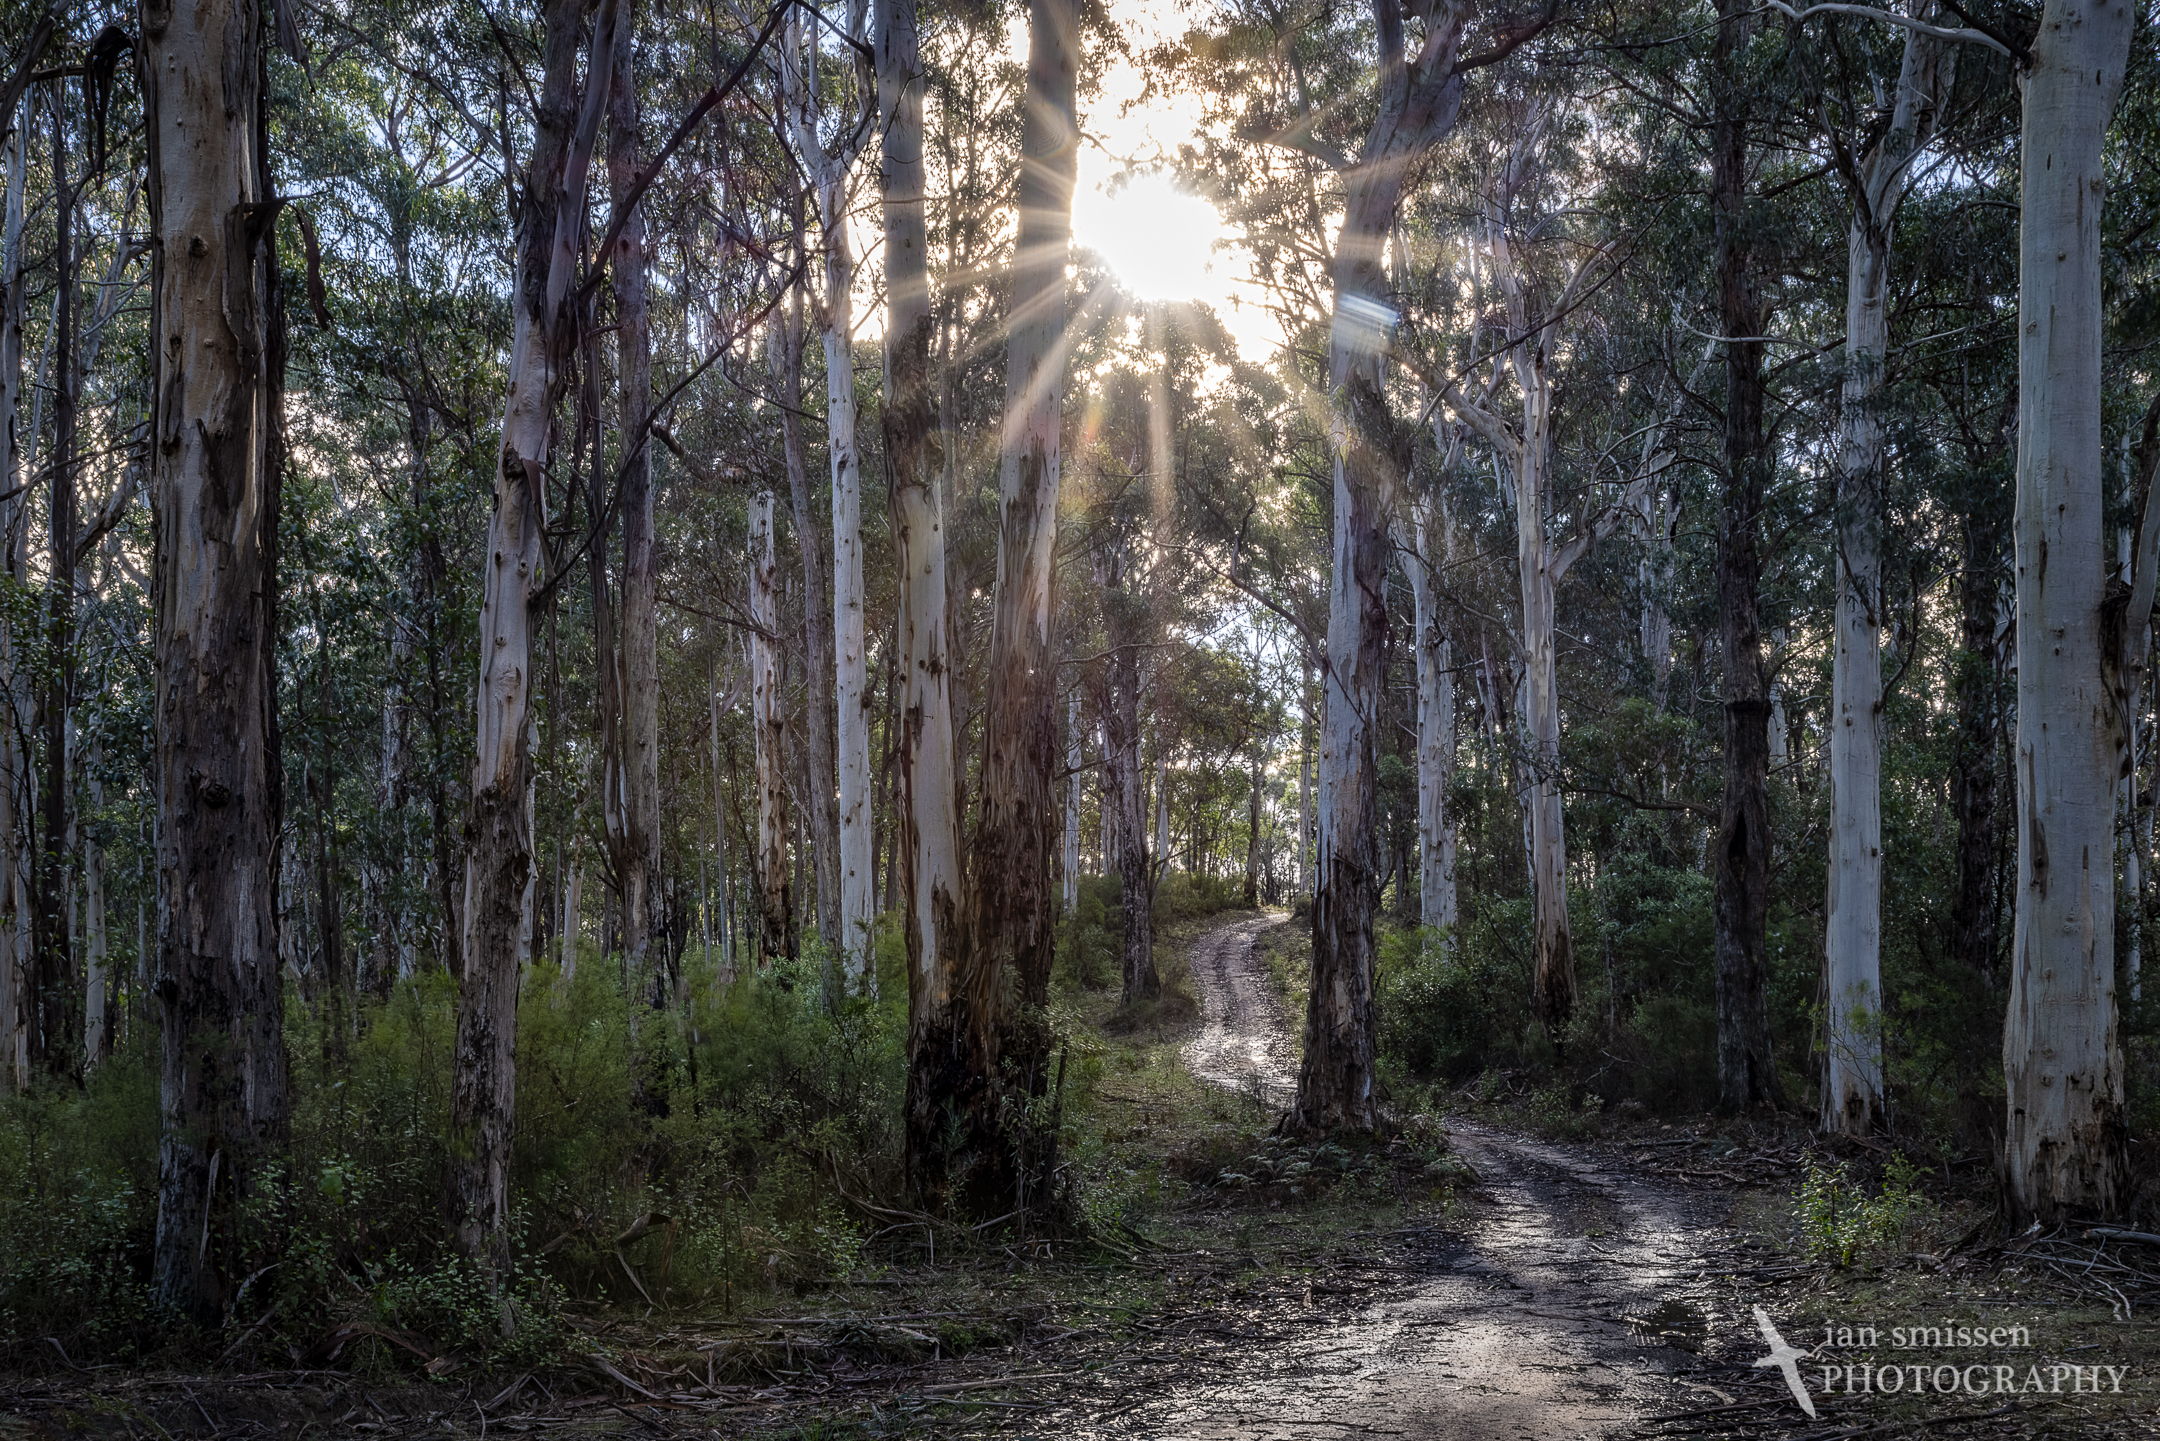 Big Hill Track, Great Otway National Park, Victoria, Australia 35mm, ISO 100, 5-shot HDR: 1/8 to 2 seconds @ f/22 (two shots blended to remove sun flare)